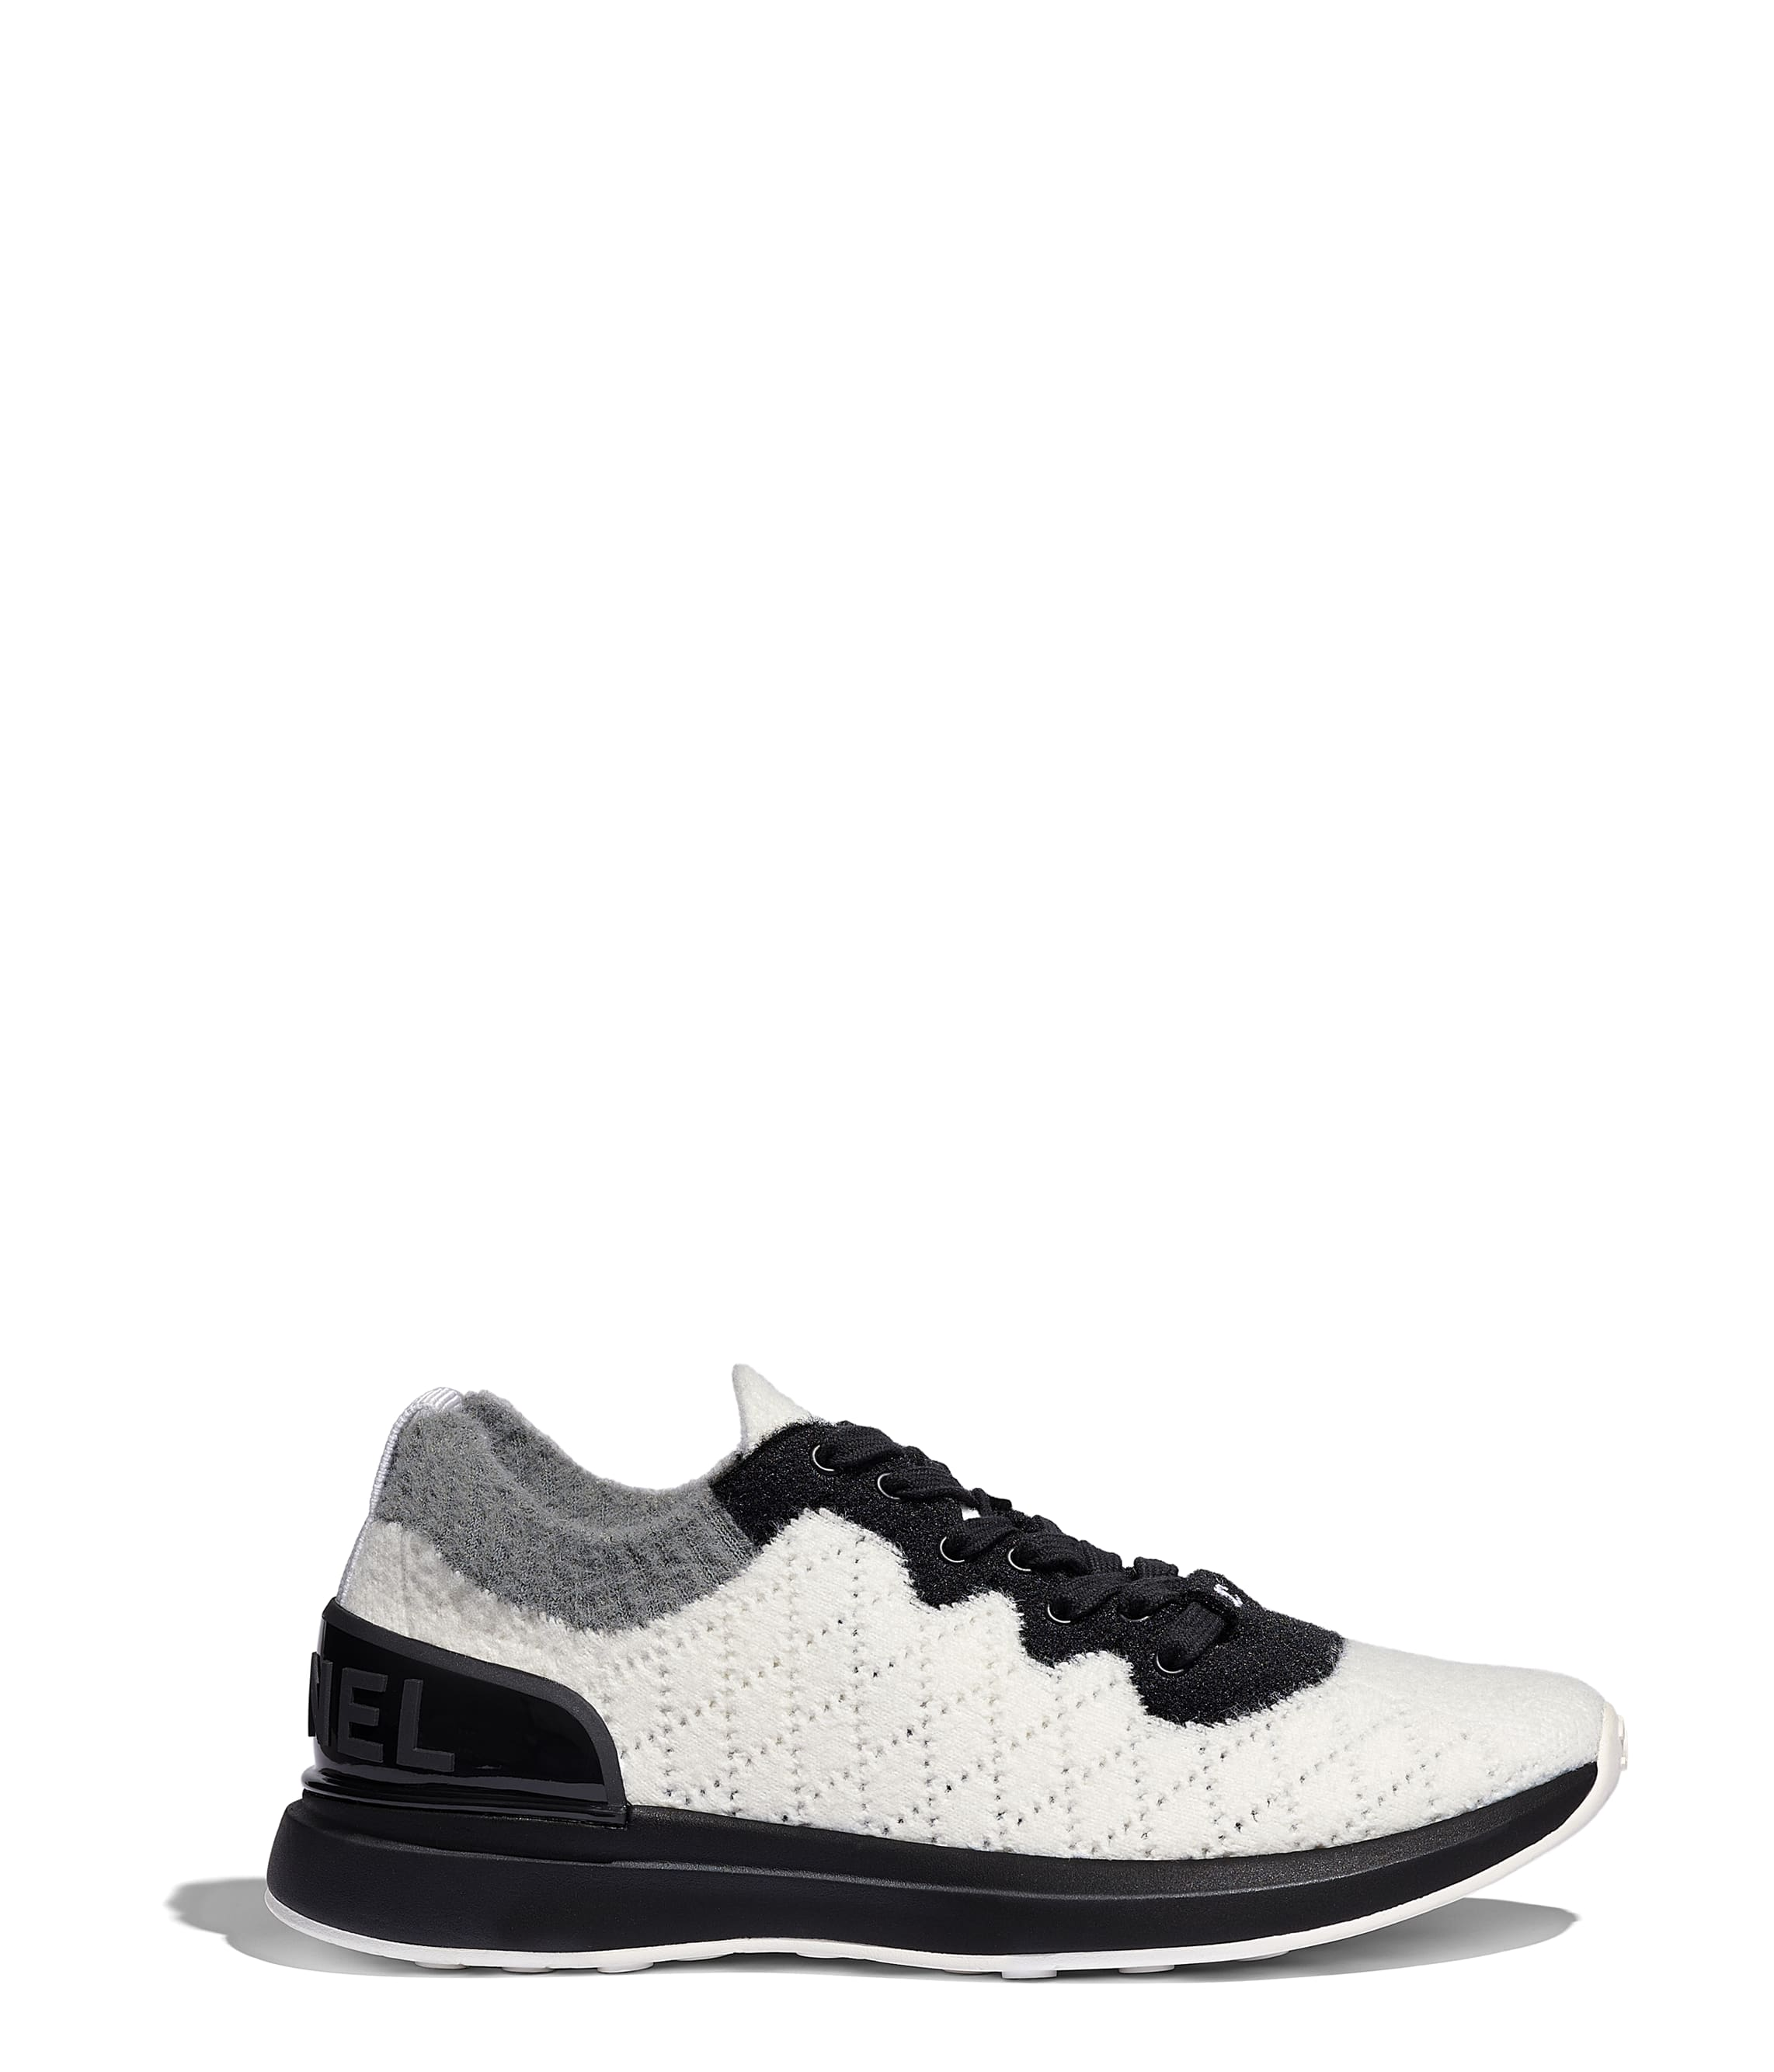 best cheap b8440 b3a7f Sneakers - Calzature - CHANEL